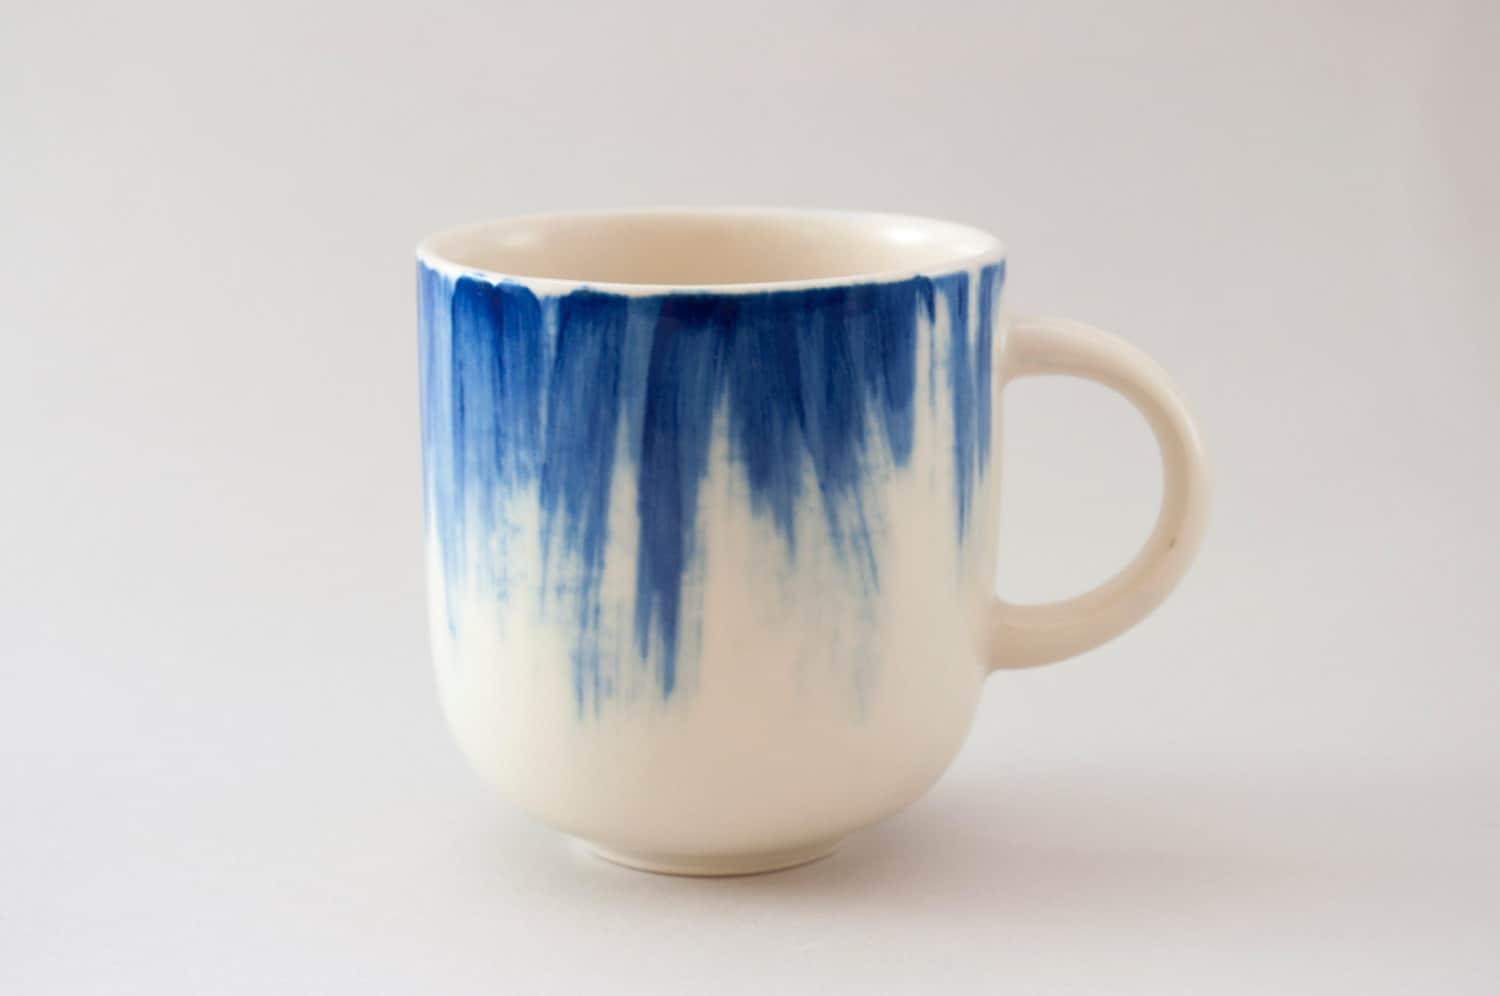 Handmade ceramic mug with blue brushstrokes h 3 by for How to paint ceramic mugs at home